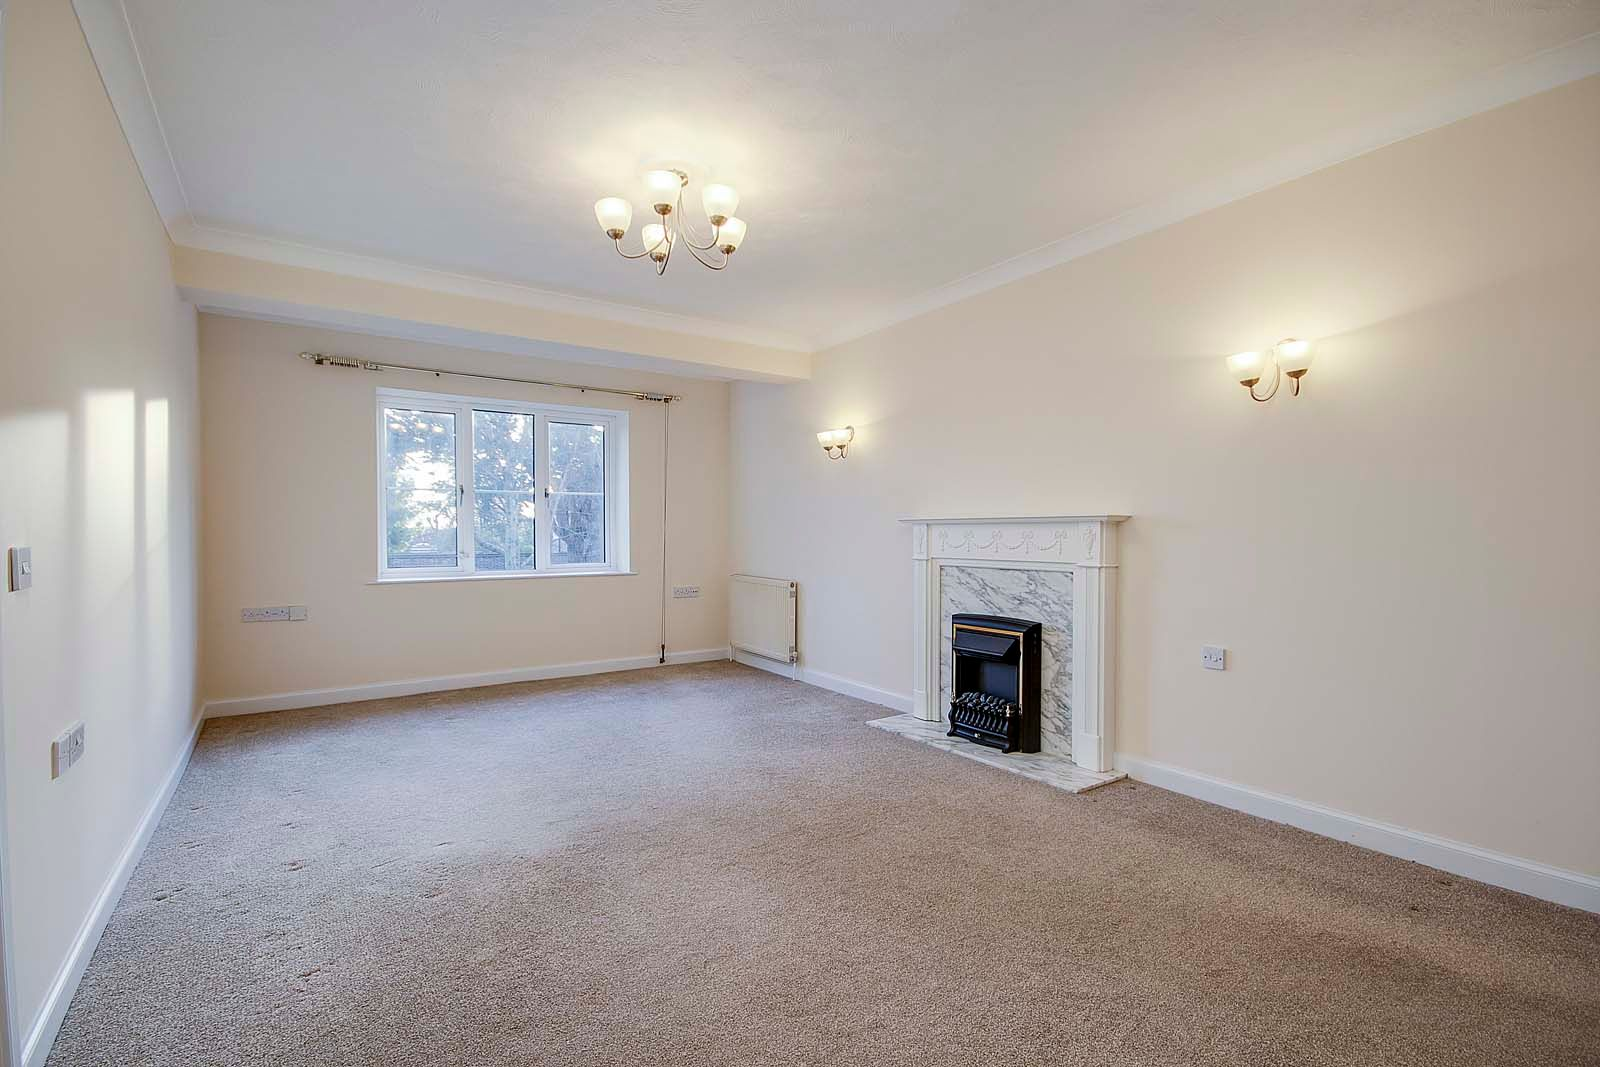 2 bed  for sale in Sea Lane Close  - Property Image 2